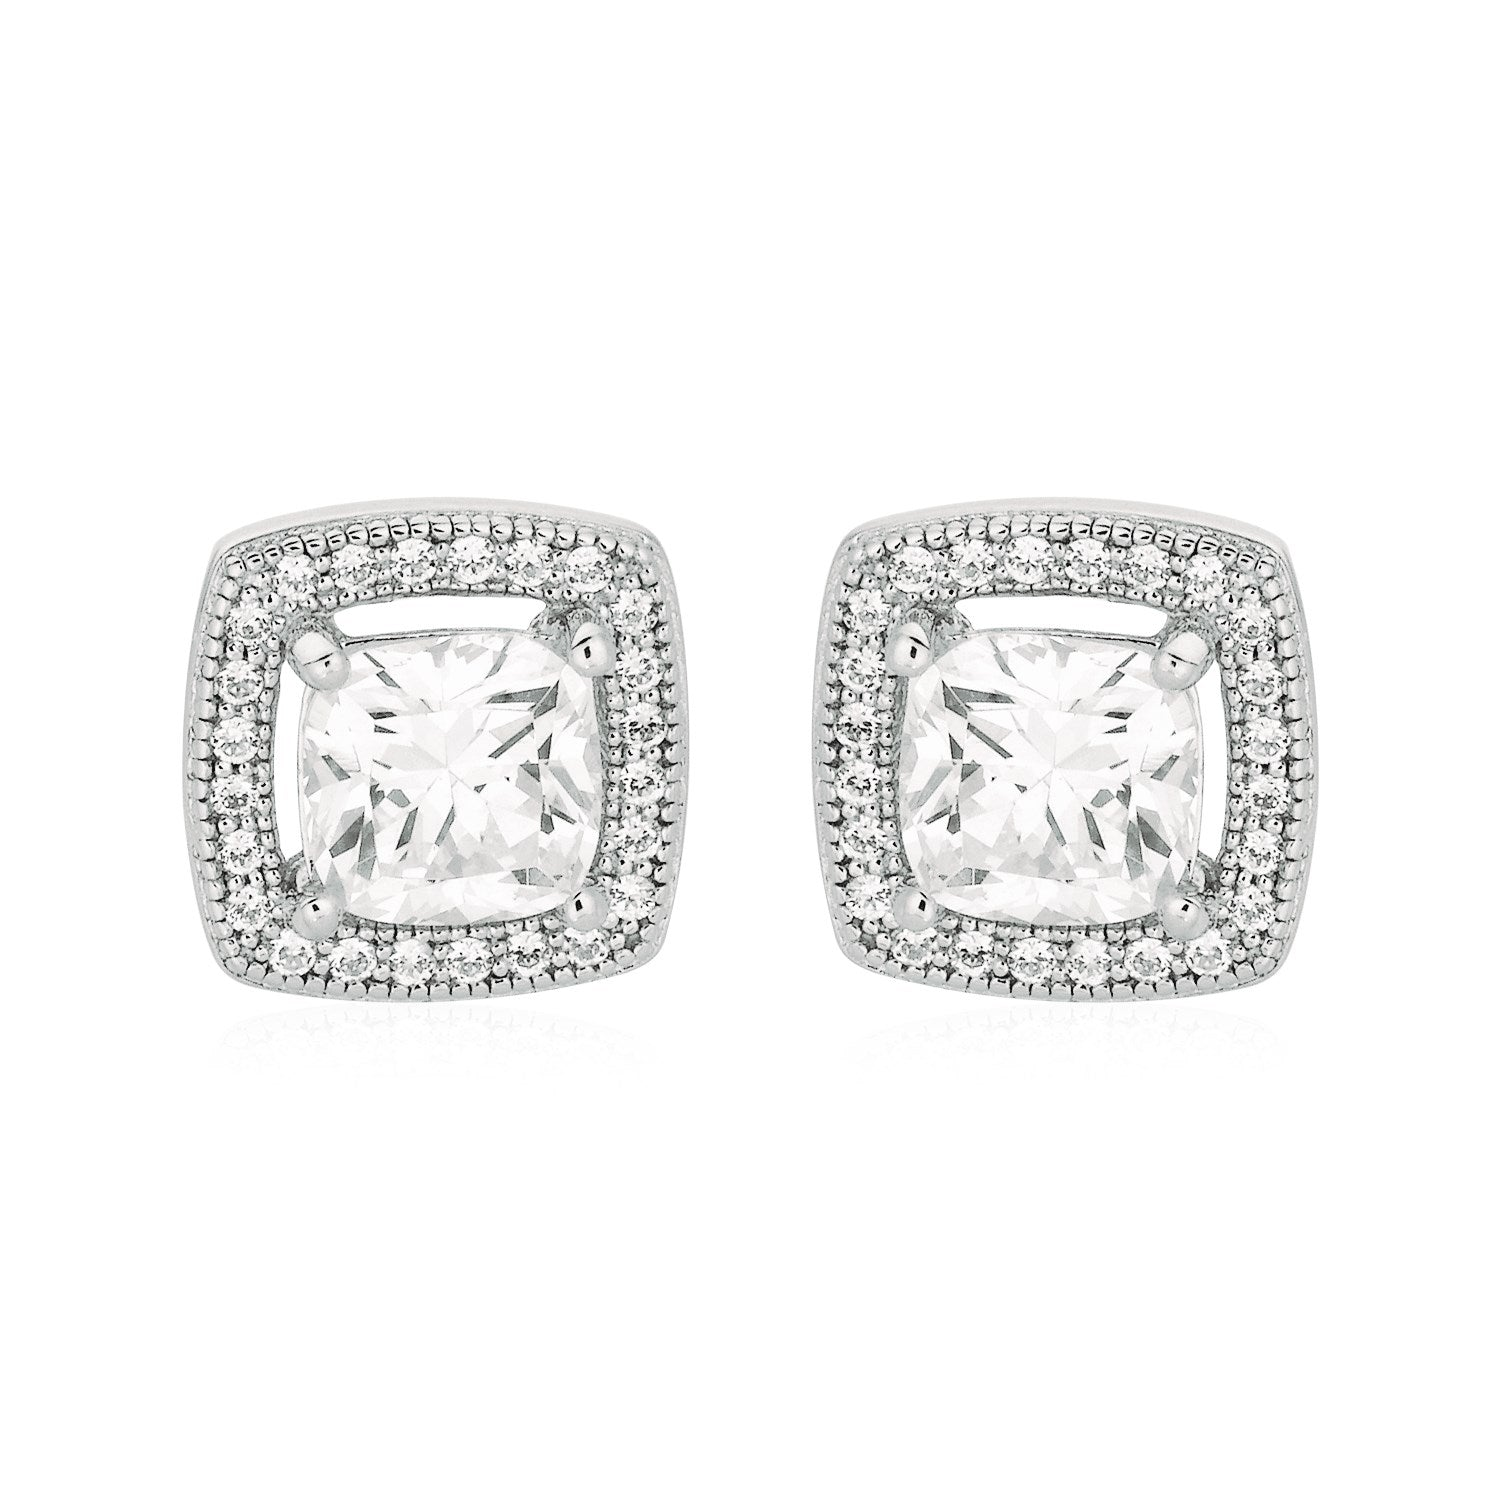 Cushion Earrings with Cubic Zirconia in Sterling Silver